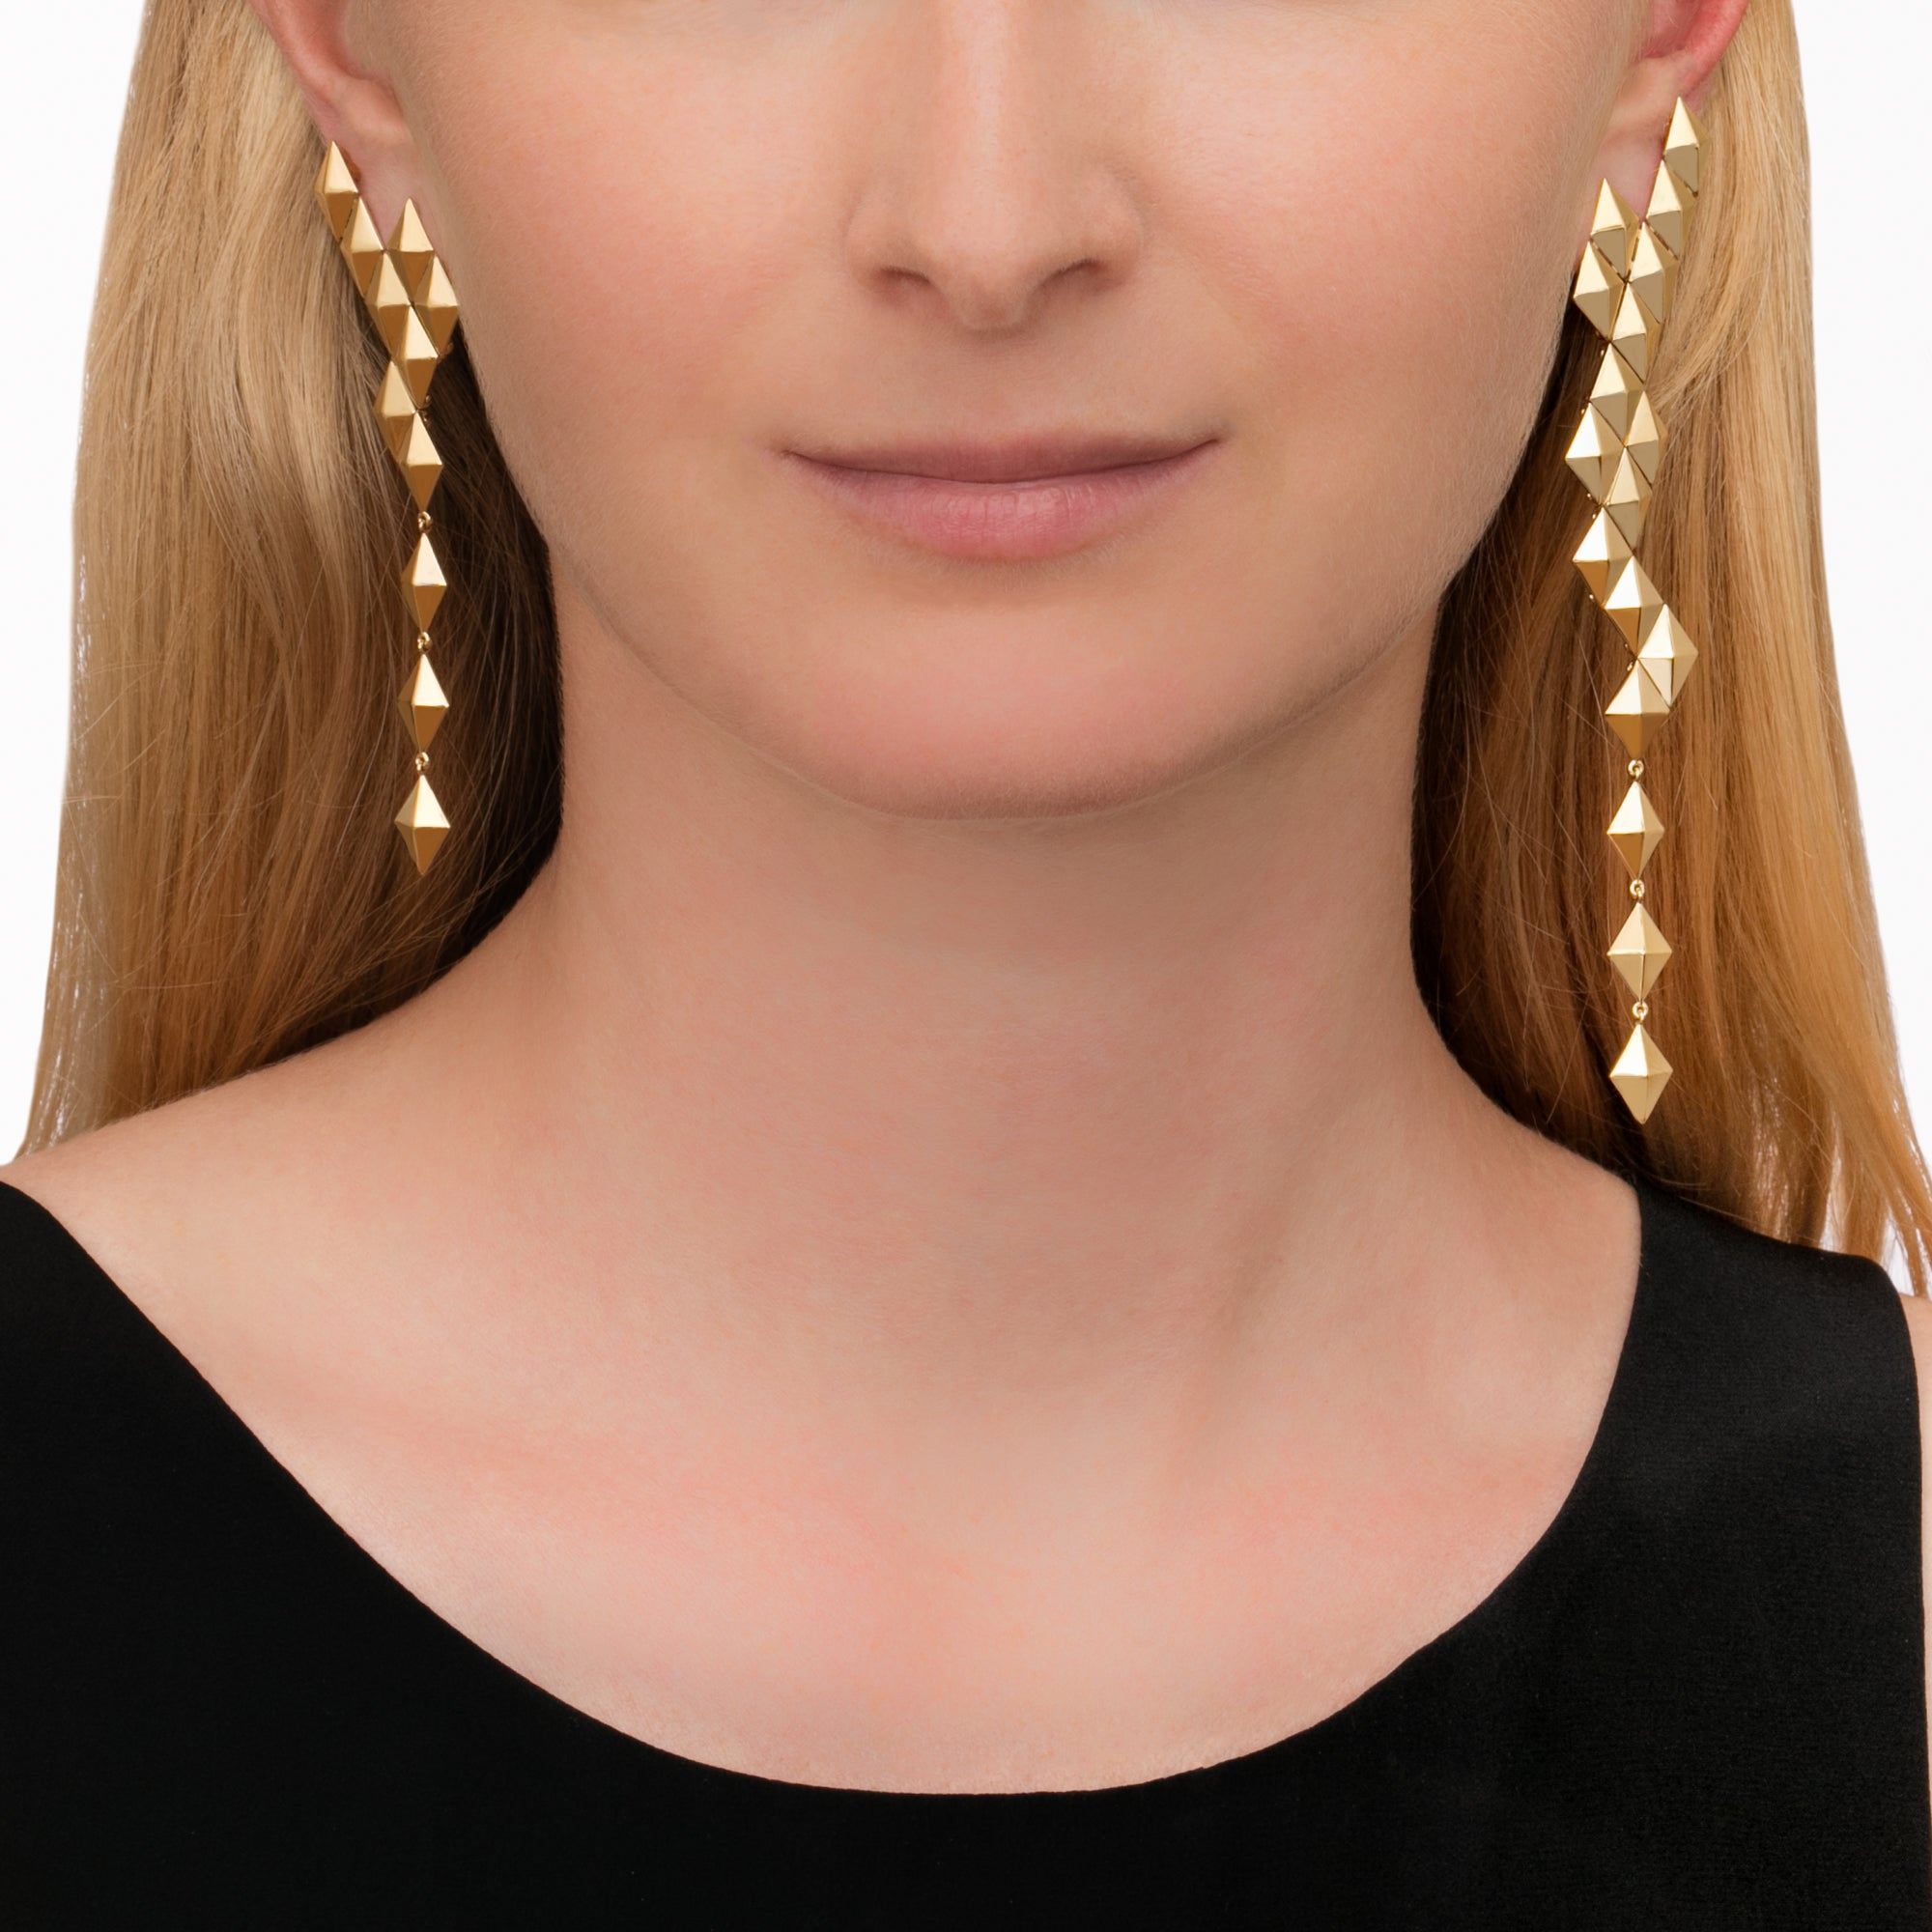 Python Asymmetrical Drop Earrings - Cadar - Earrings | Broken English Jewelry